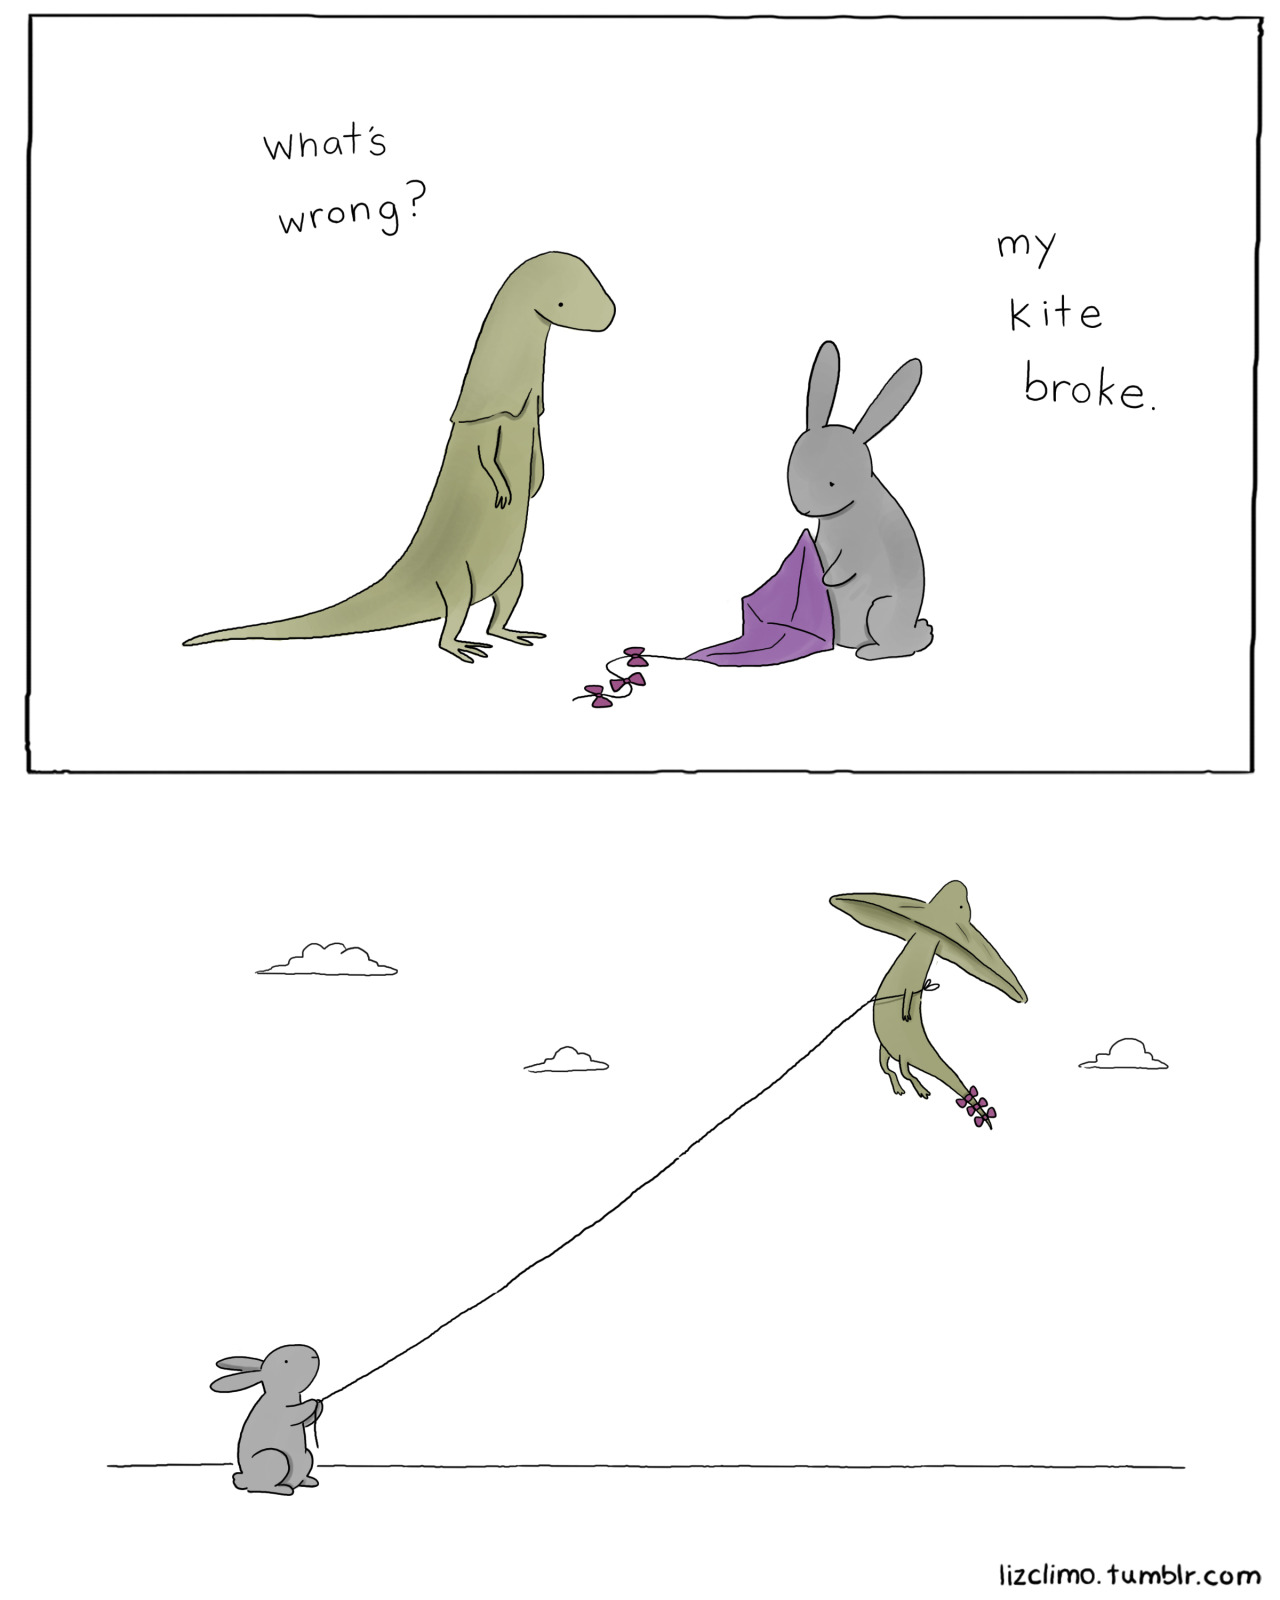 """lizclimo:"""" man, that lizard is nice. """" happy friends day! & also #tbt"""